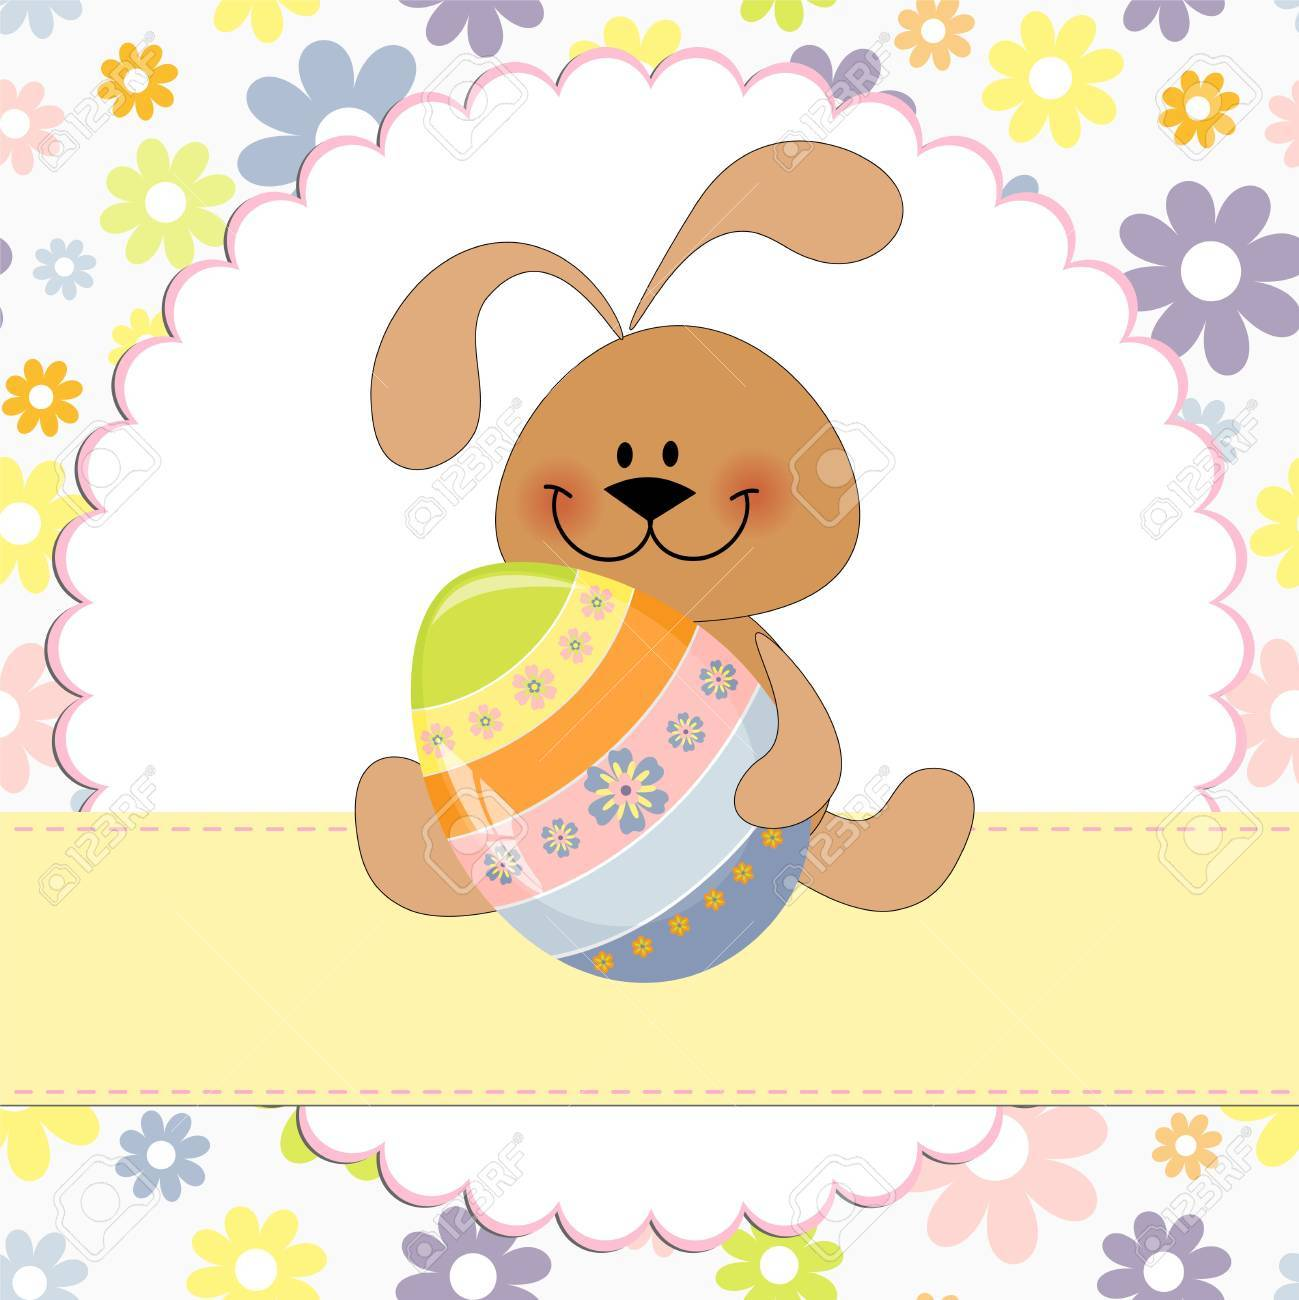 Cute Template For Easter Greetings Card With Rabbit Royalty Free – Easter Greeting Card Template